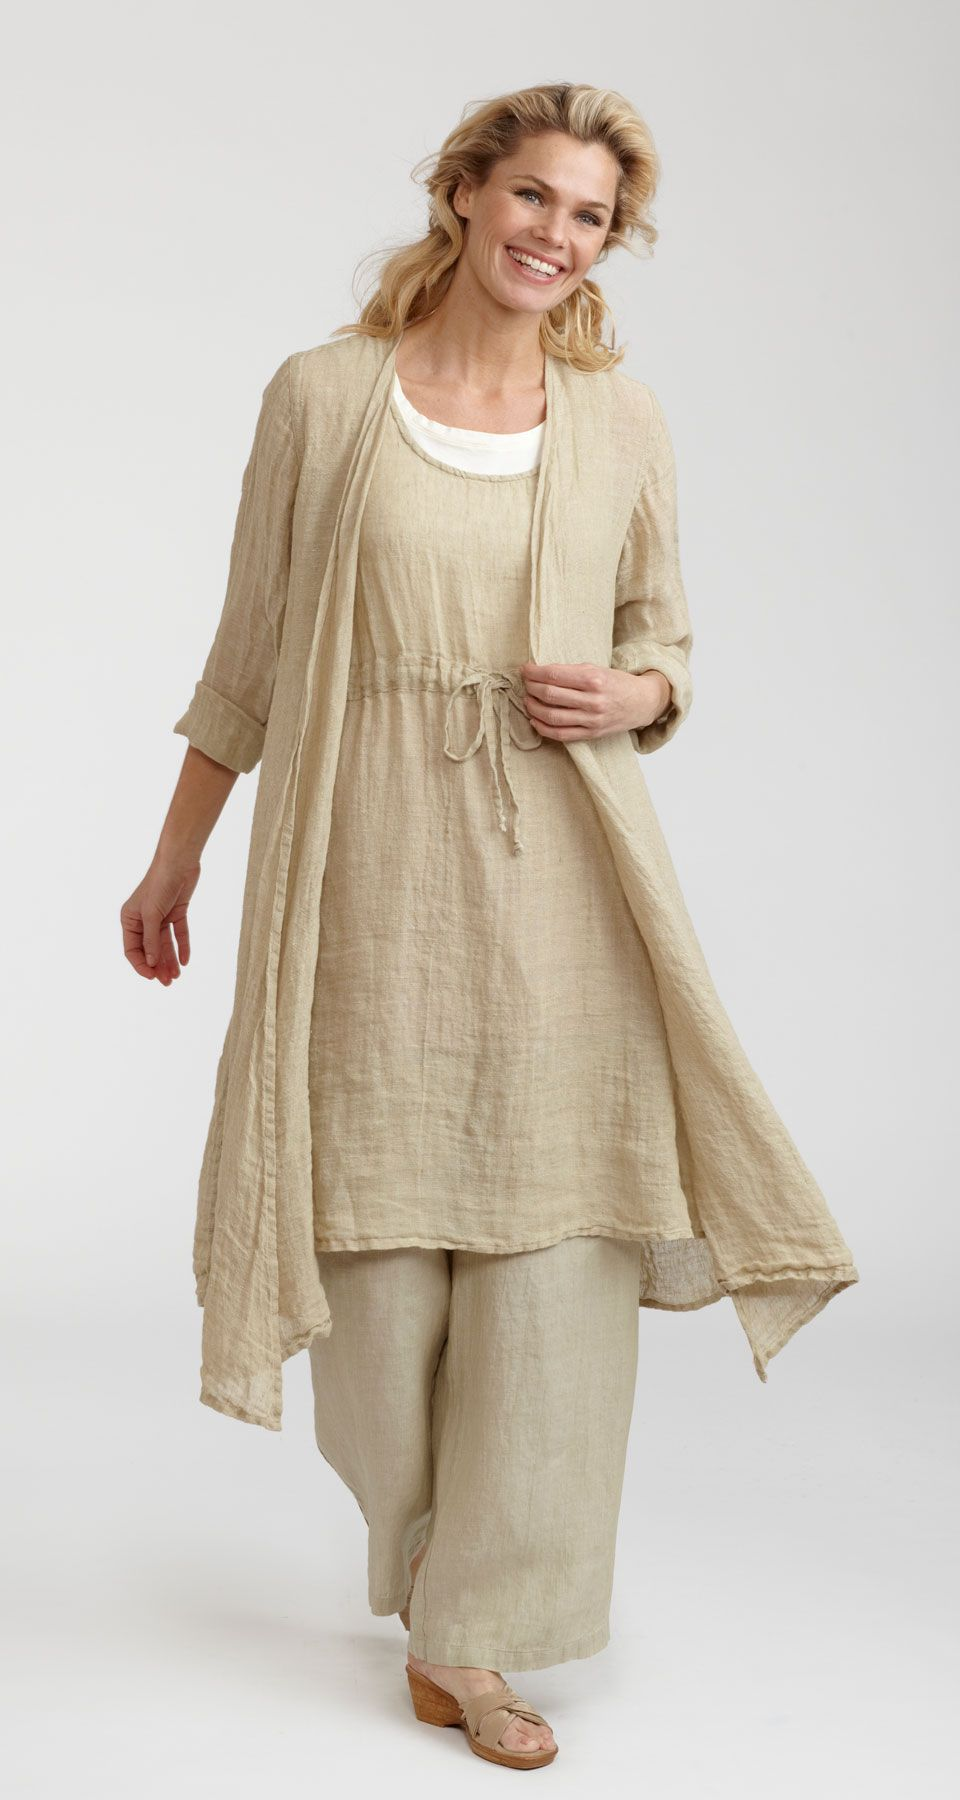 a67a2bea6c3b Mmm. Flax clothing. Just had to have the duster in bleached linen gauze.